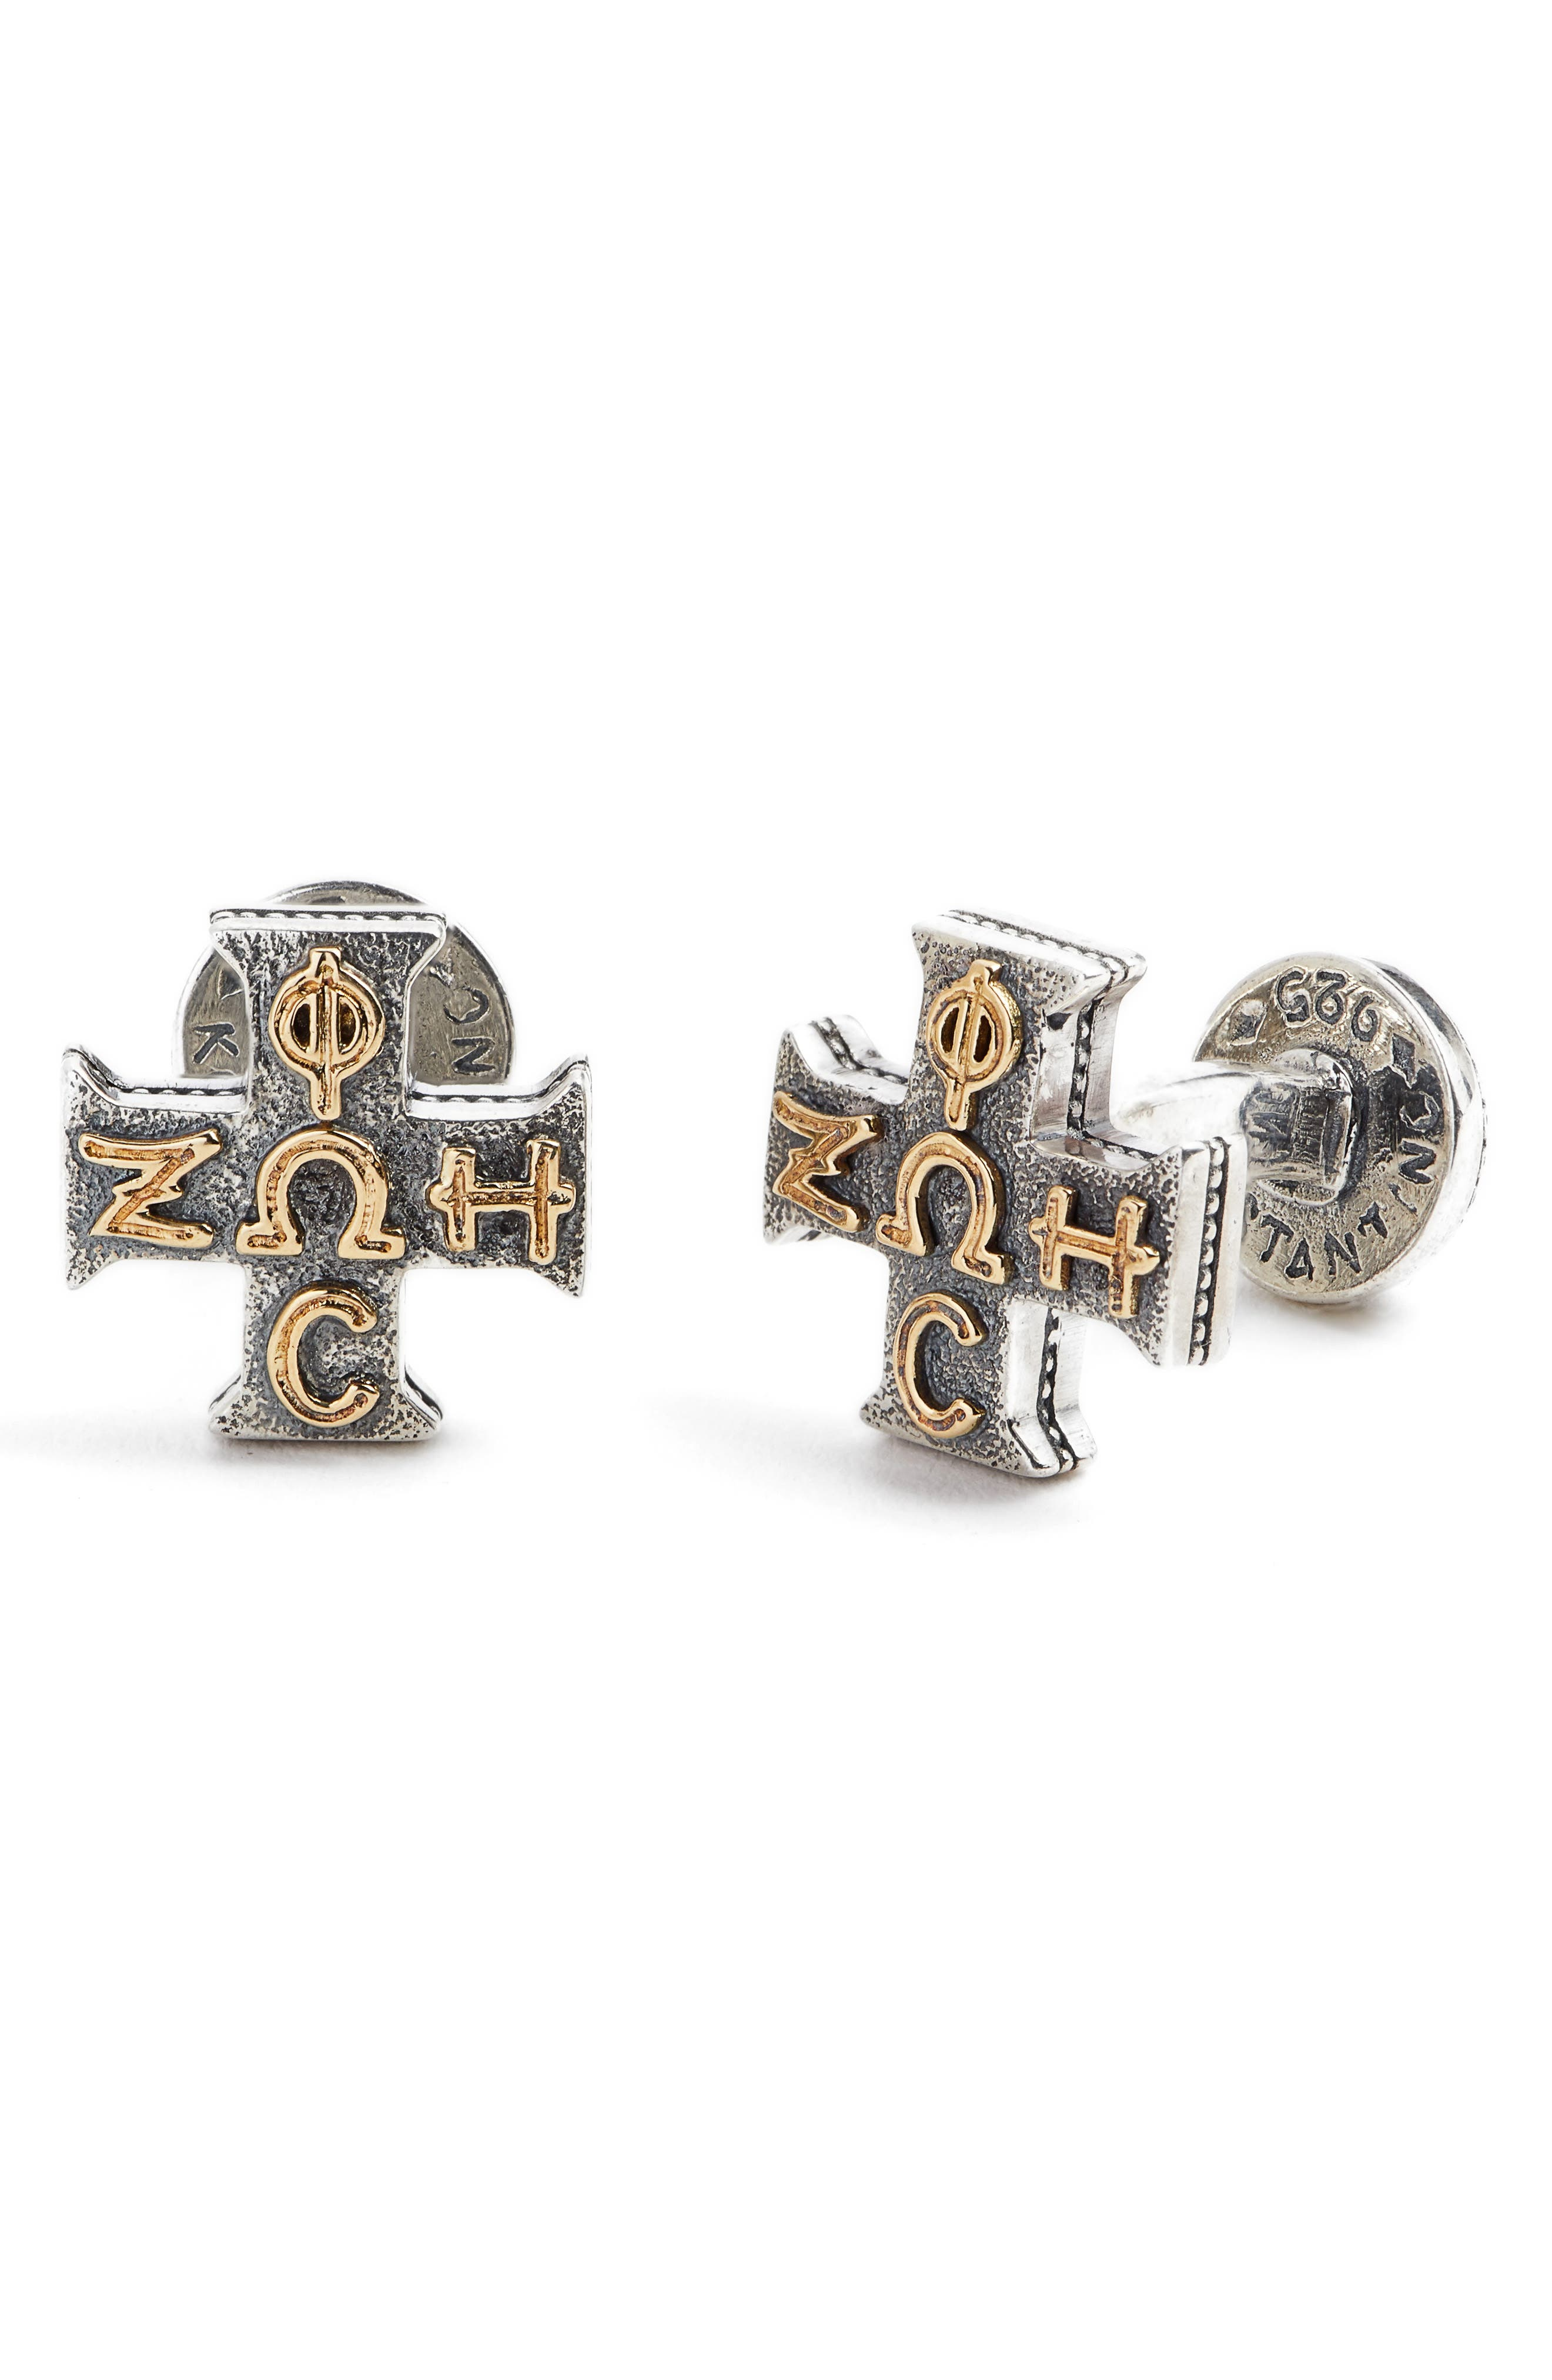 Stavros Cross Cuff Links,                         Main,                         color, Silver/ Gold